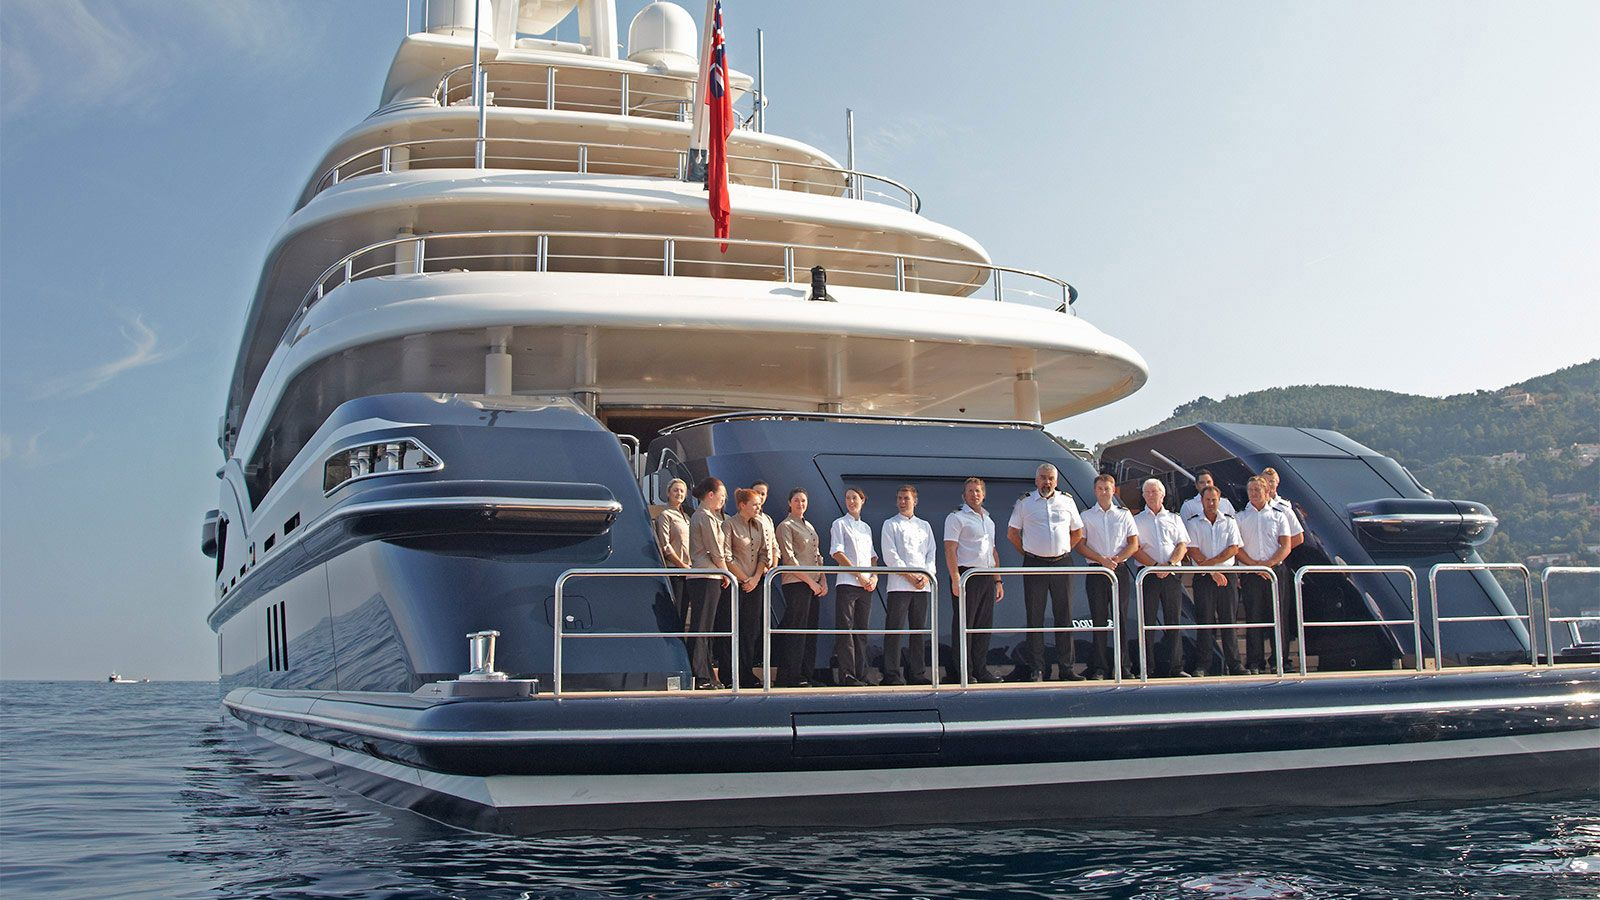 SHERAKHAN Superyacht Luxury Motor Yacht for Charter with